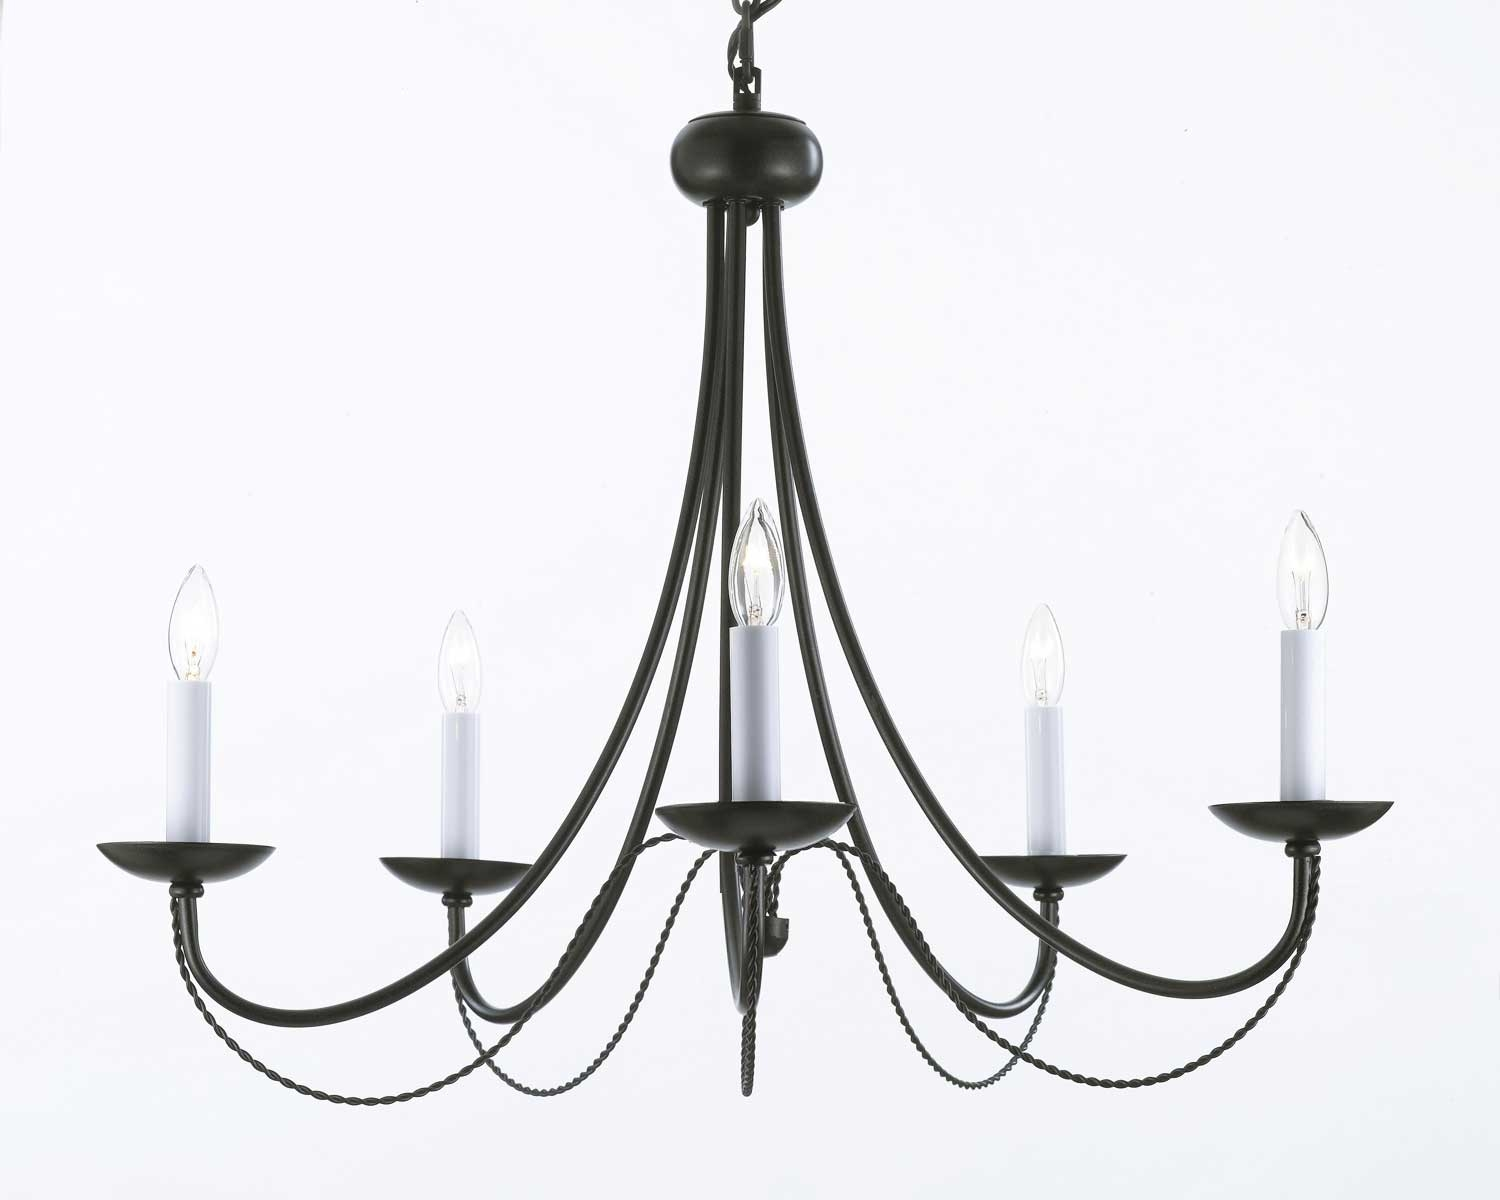 Chandelier Wrought Iron Chandeliers For Sale Rustic Large European Pertaining To Large Iron Chandeliers (#4 of 12)